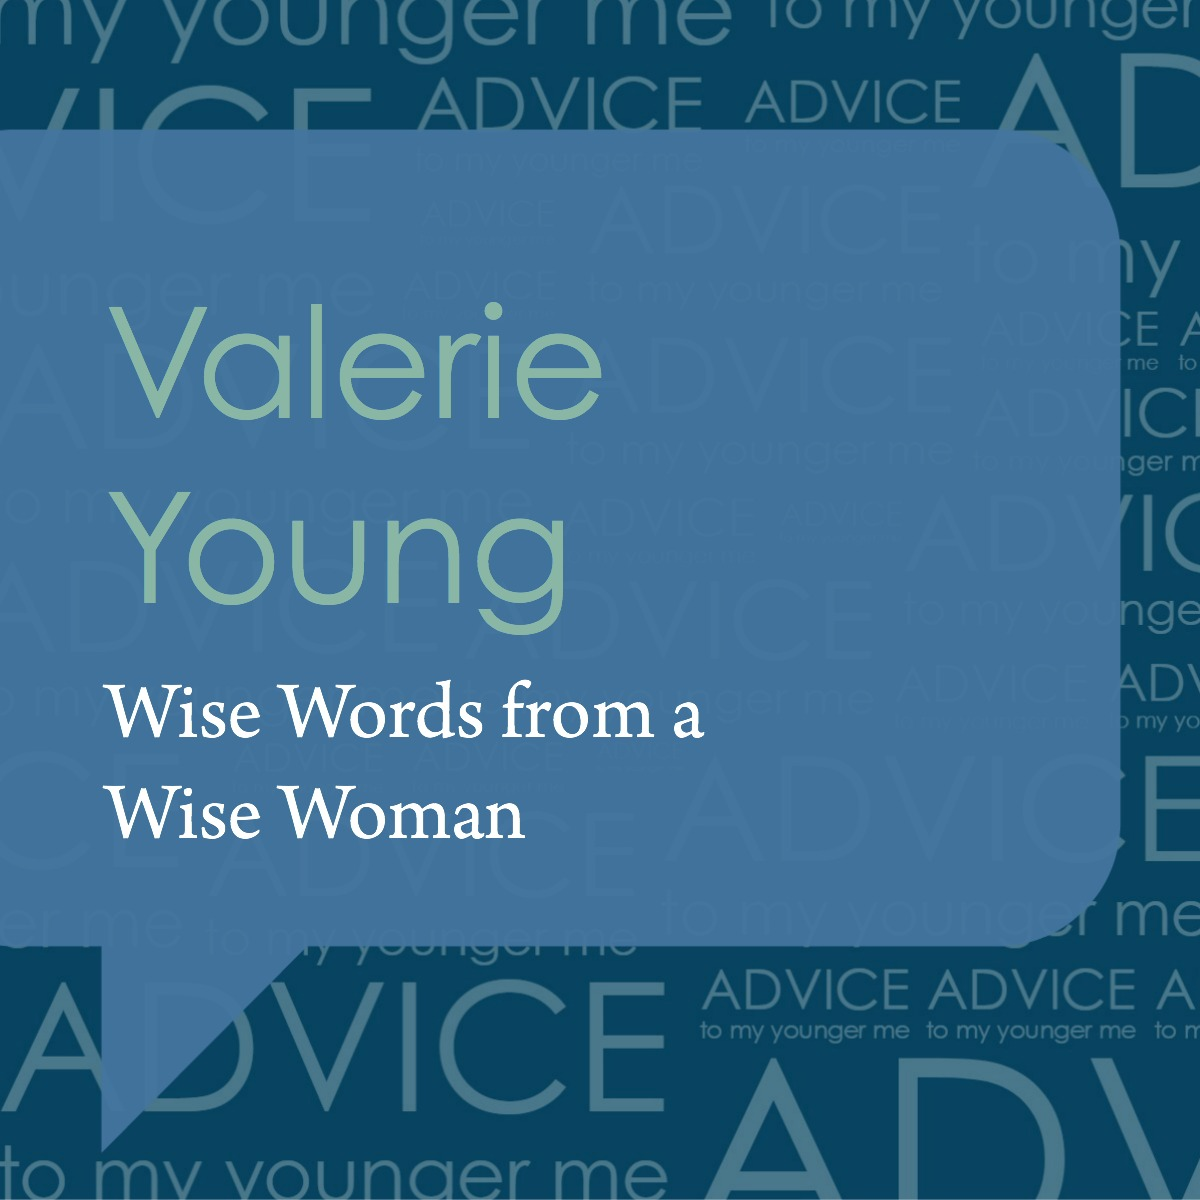 Valerie Young